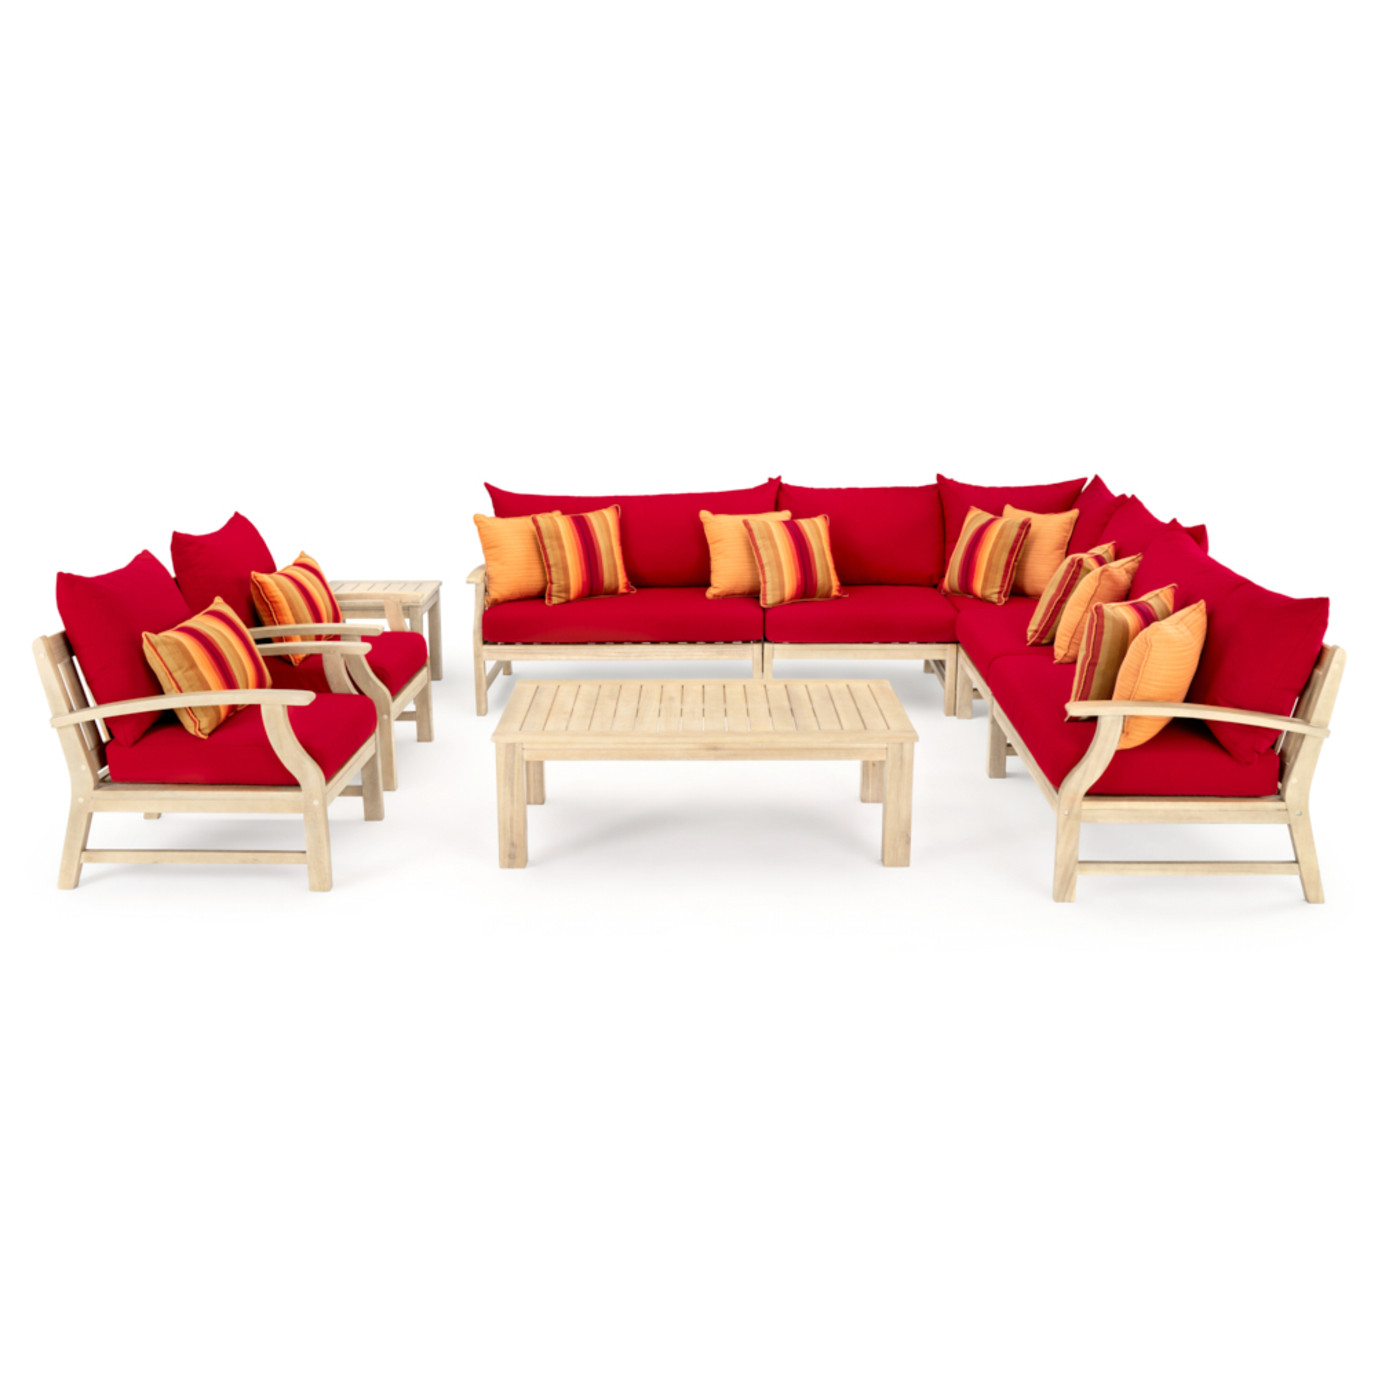 Kooper 9 Piece Seating Set - Sunset Red